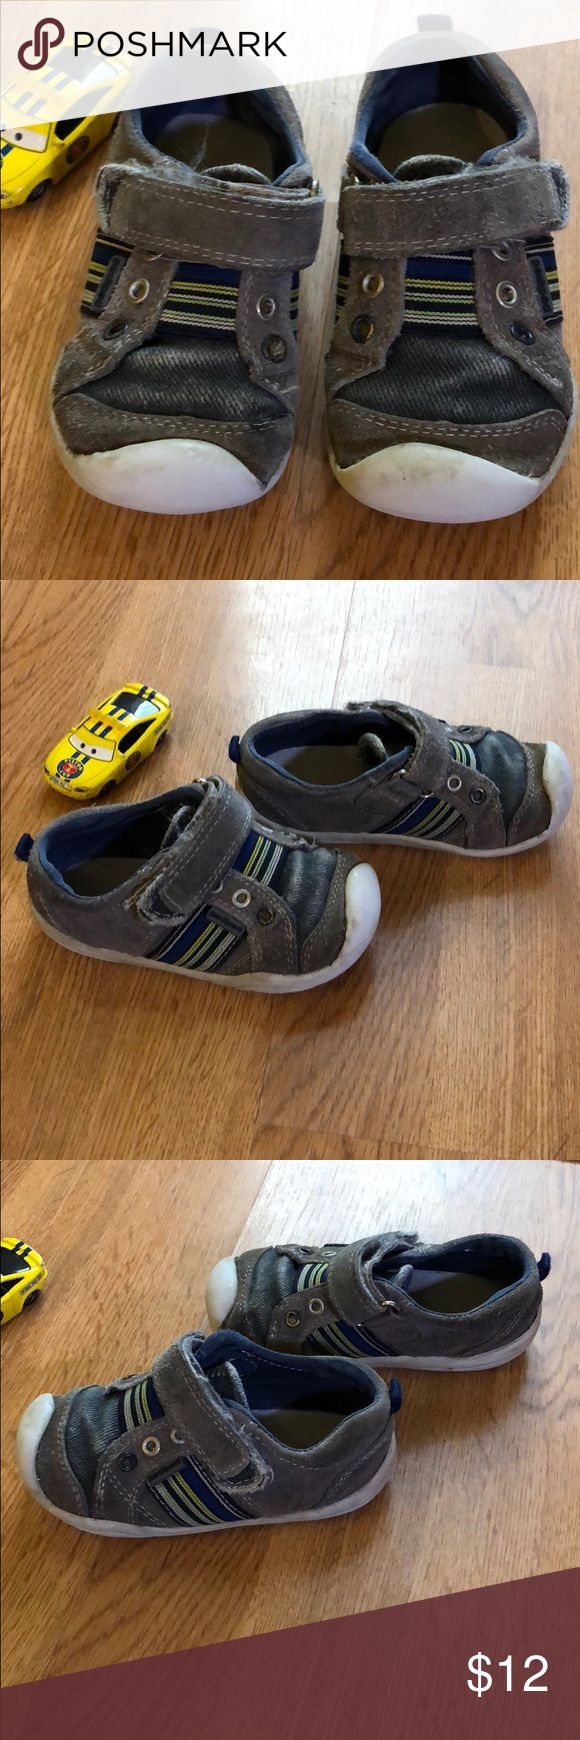 Pediped Velcro Toddler 6.5 runners These are in good used condition, with the soles showing wear. Size 23 which is a 6.5 Toddler. Perfect shoe for active play! All Velcro is functional and attached. Pediped brand. pediped Shoes Sneakers